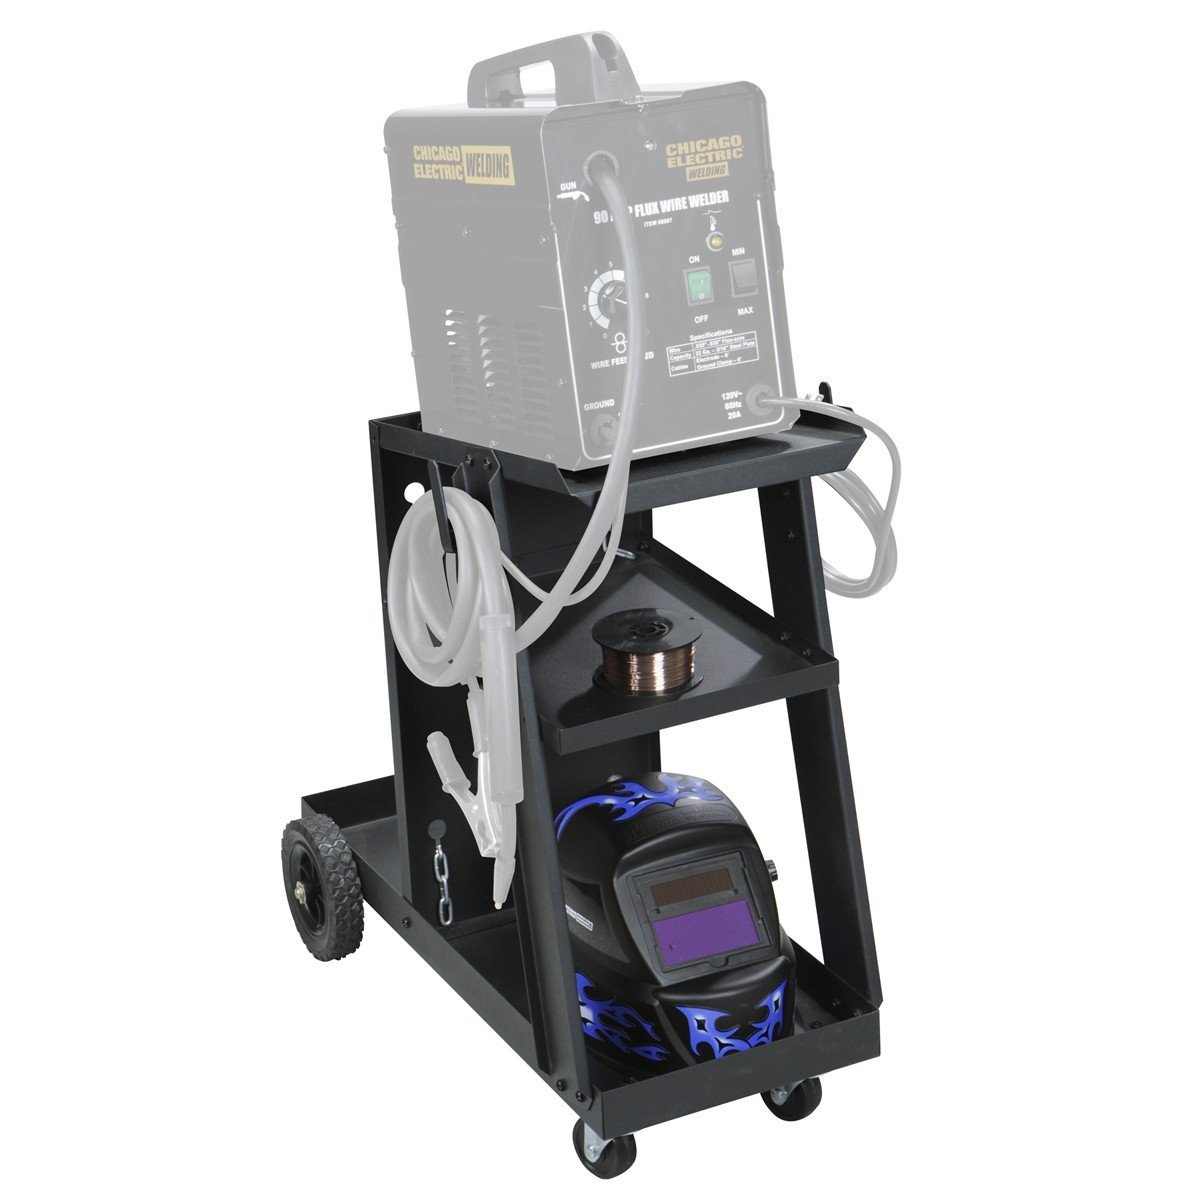 Chicago MIG and Tig Welding Cart | Mig Welder Reviews!